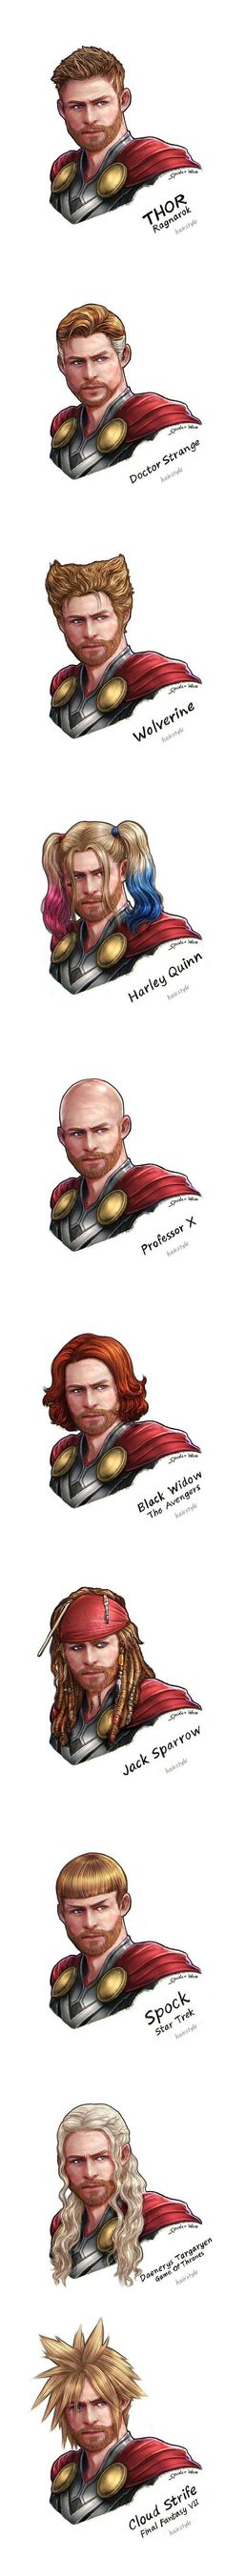 Thor | Hair | Artwork | Marvel Comics || WHY IS THIS SO FUNNY